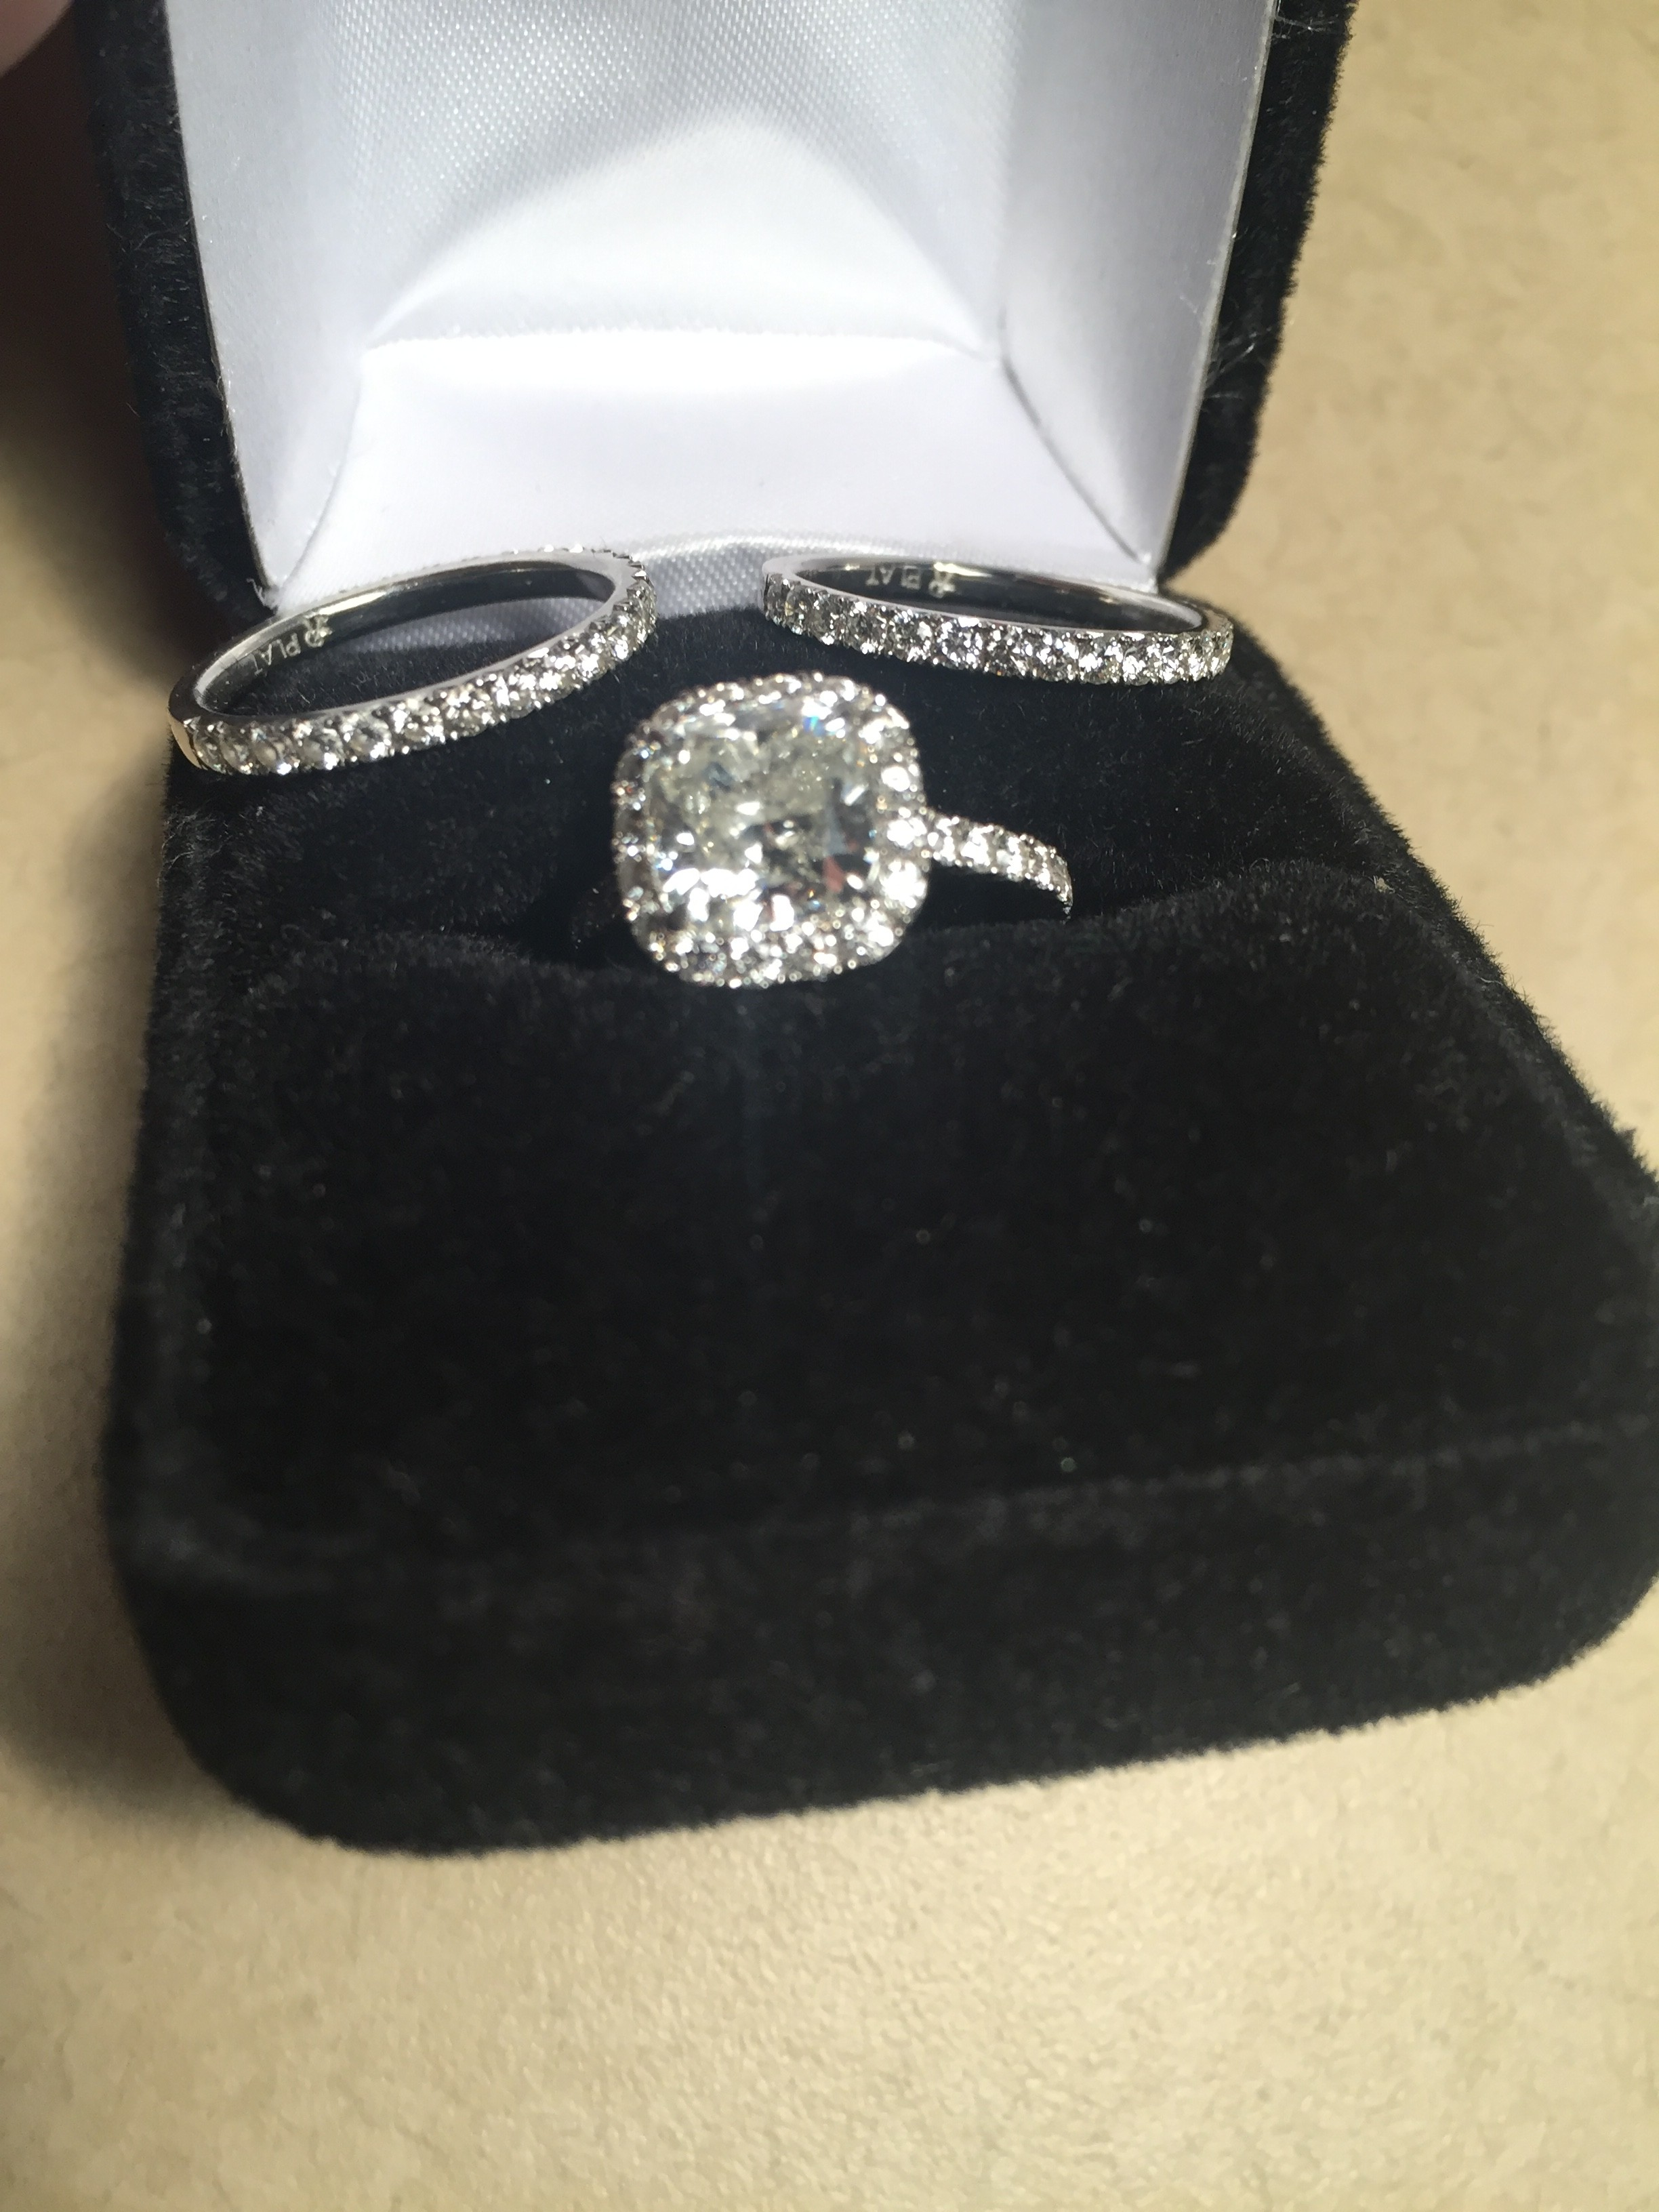 4.35 ct 3 ring combination set w/ 2.44 ct center diamond platinum band